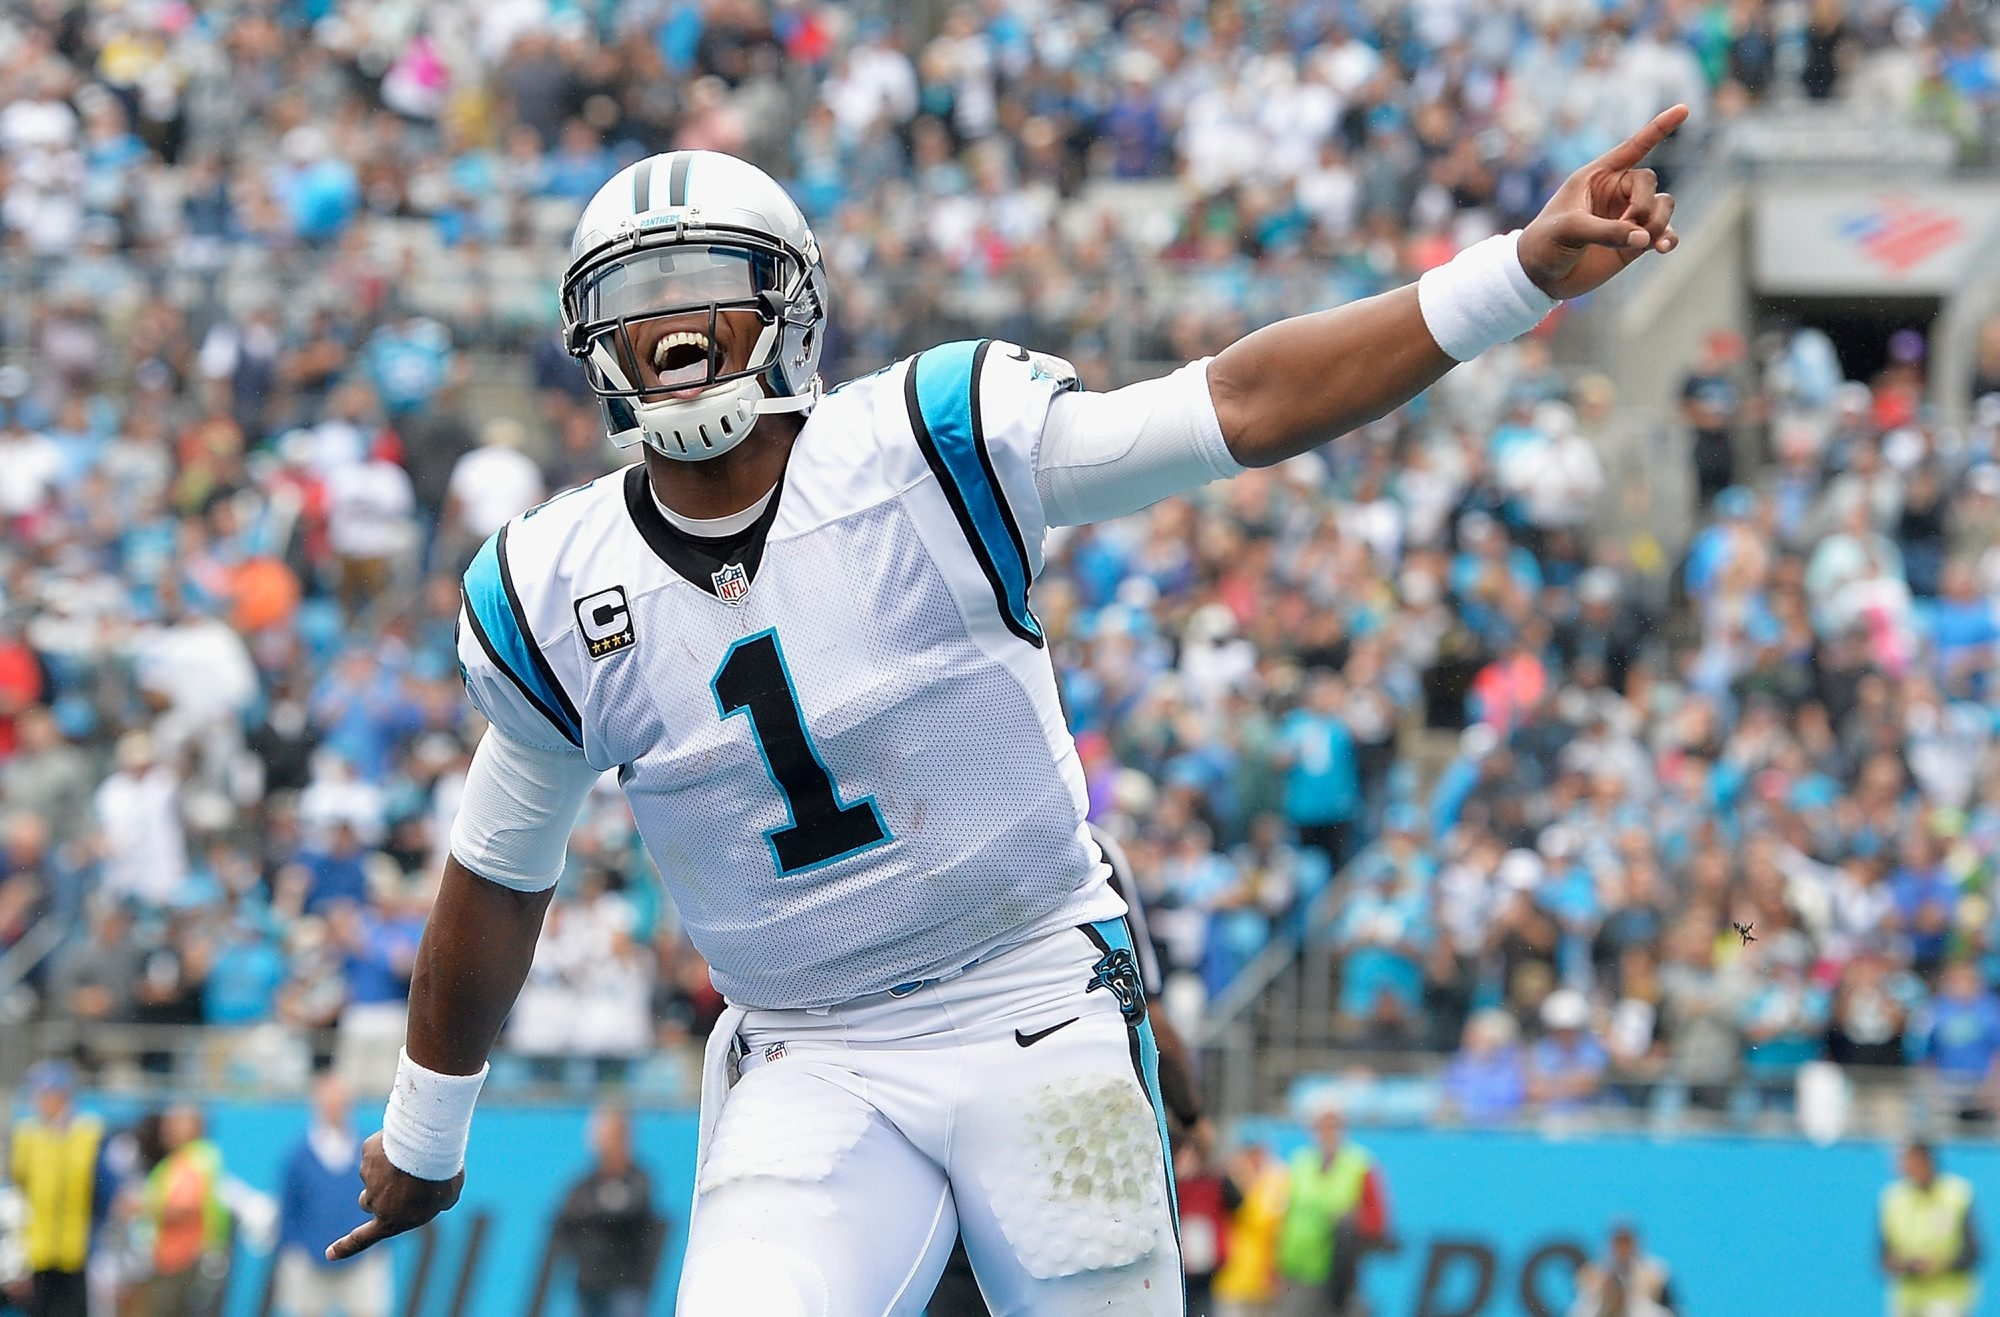 2LINE CUTLINE Cam Newton of the Carolina Panthers reacts after throwing for a touchdown against the New Orleans Saints during their game at Bank of America Stadium on September 27, 2015 in Charlotte, North Carolina.  (Photo by Grant Halverson/Getty Images)